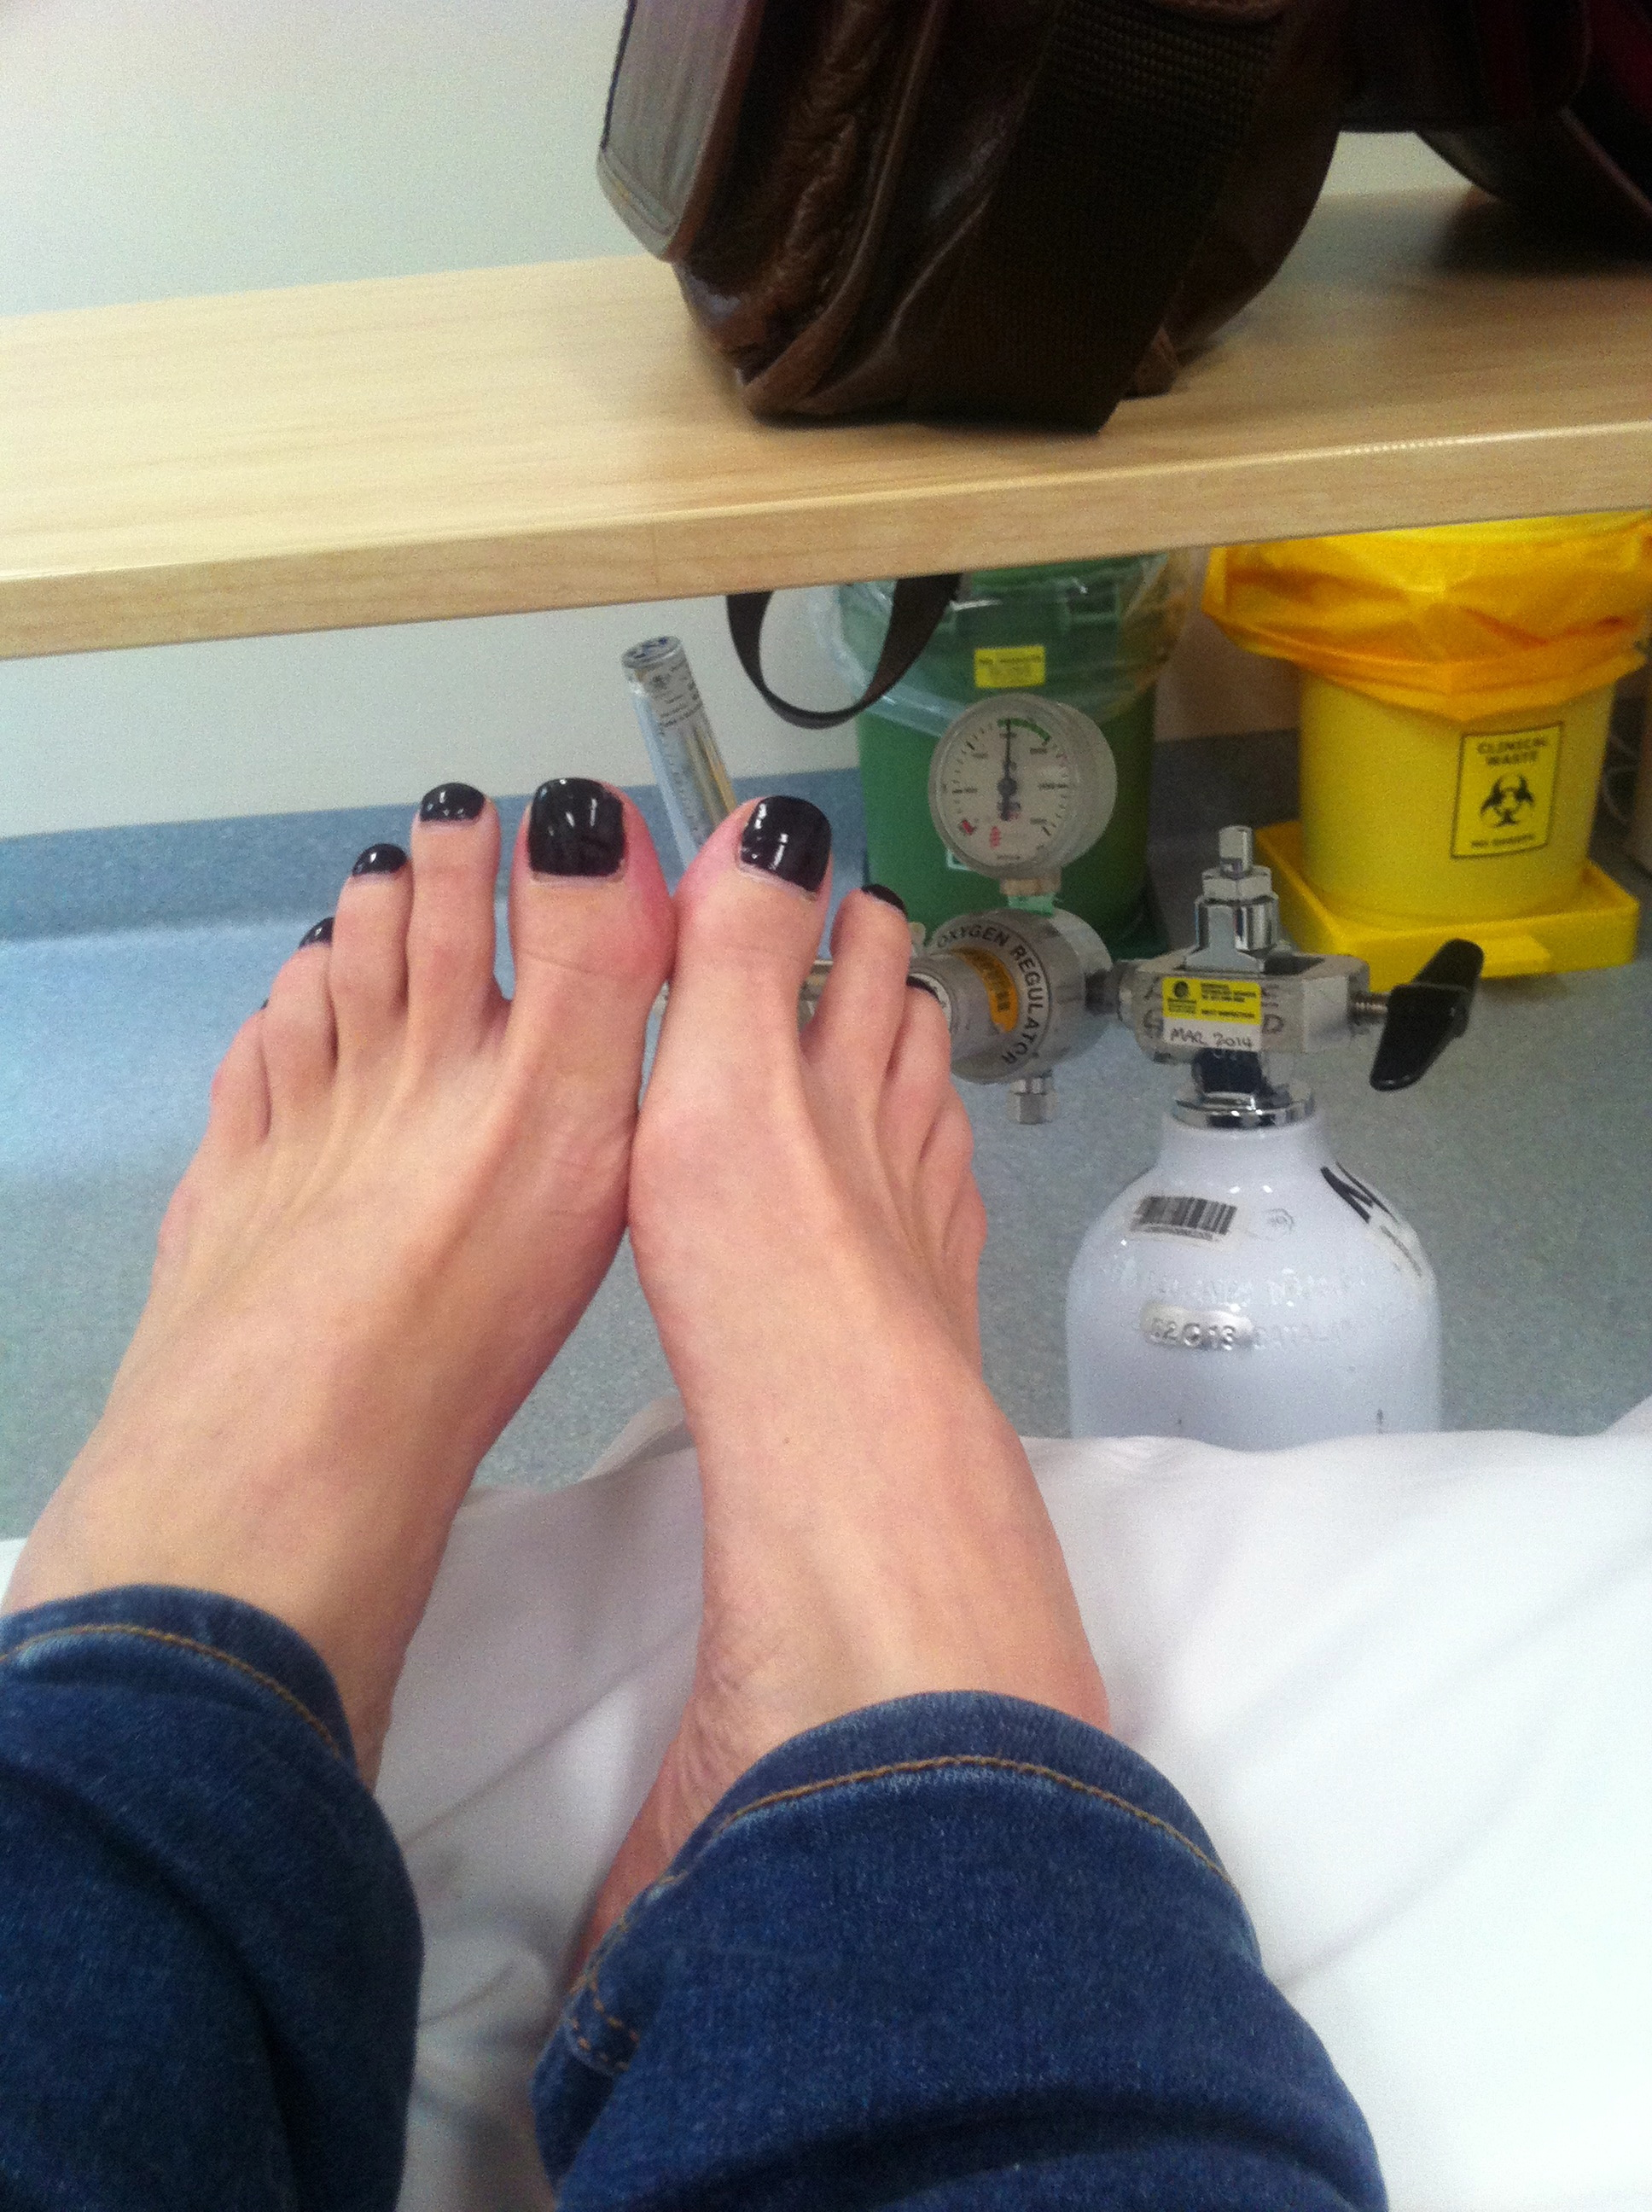 Feet, jesus, spooning dogs, goats and Birkenstocks – bruises you can ...